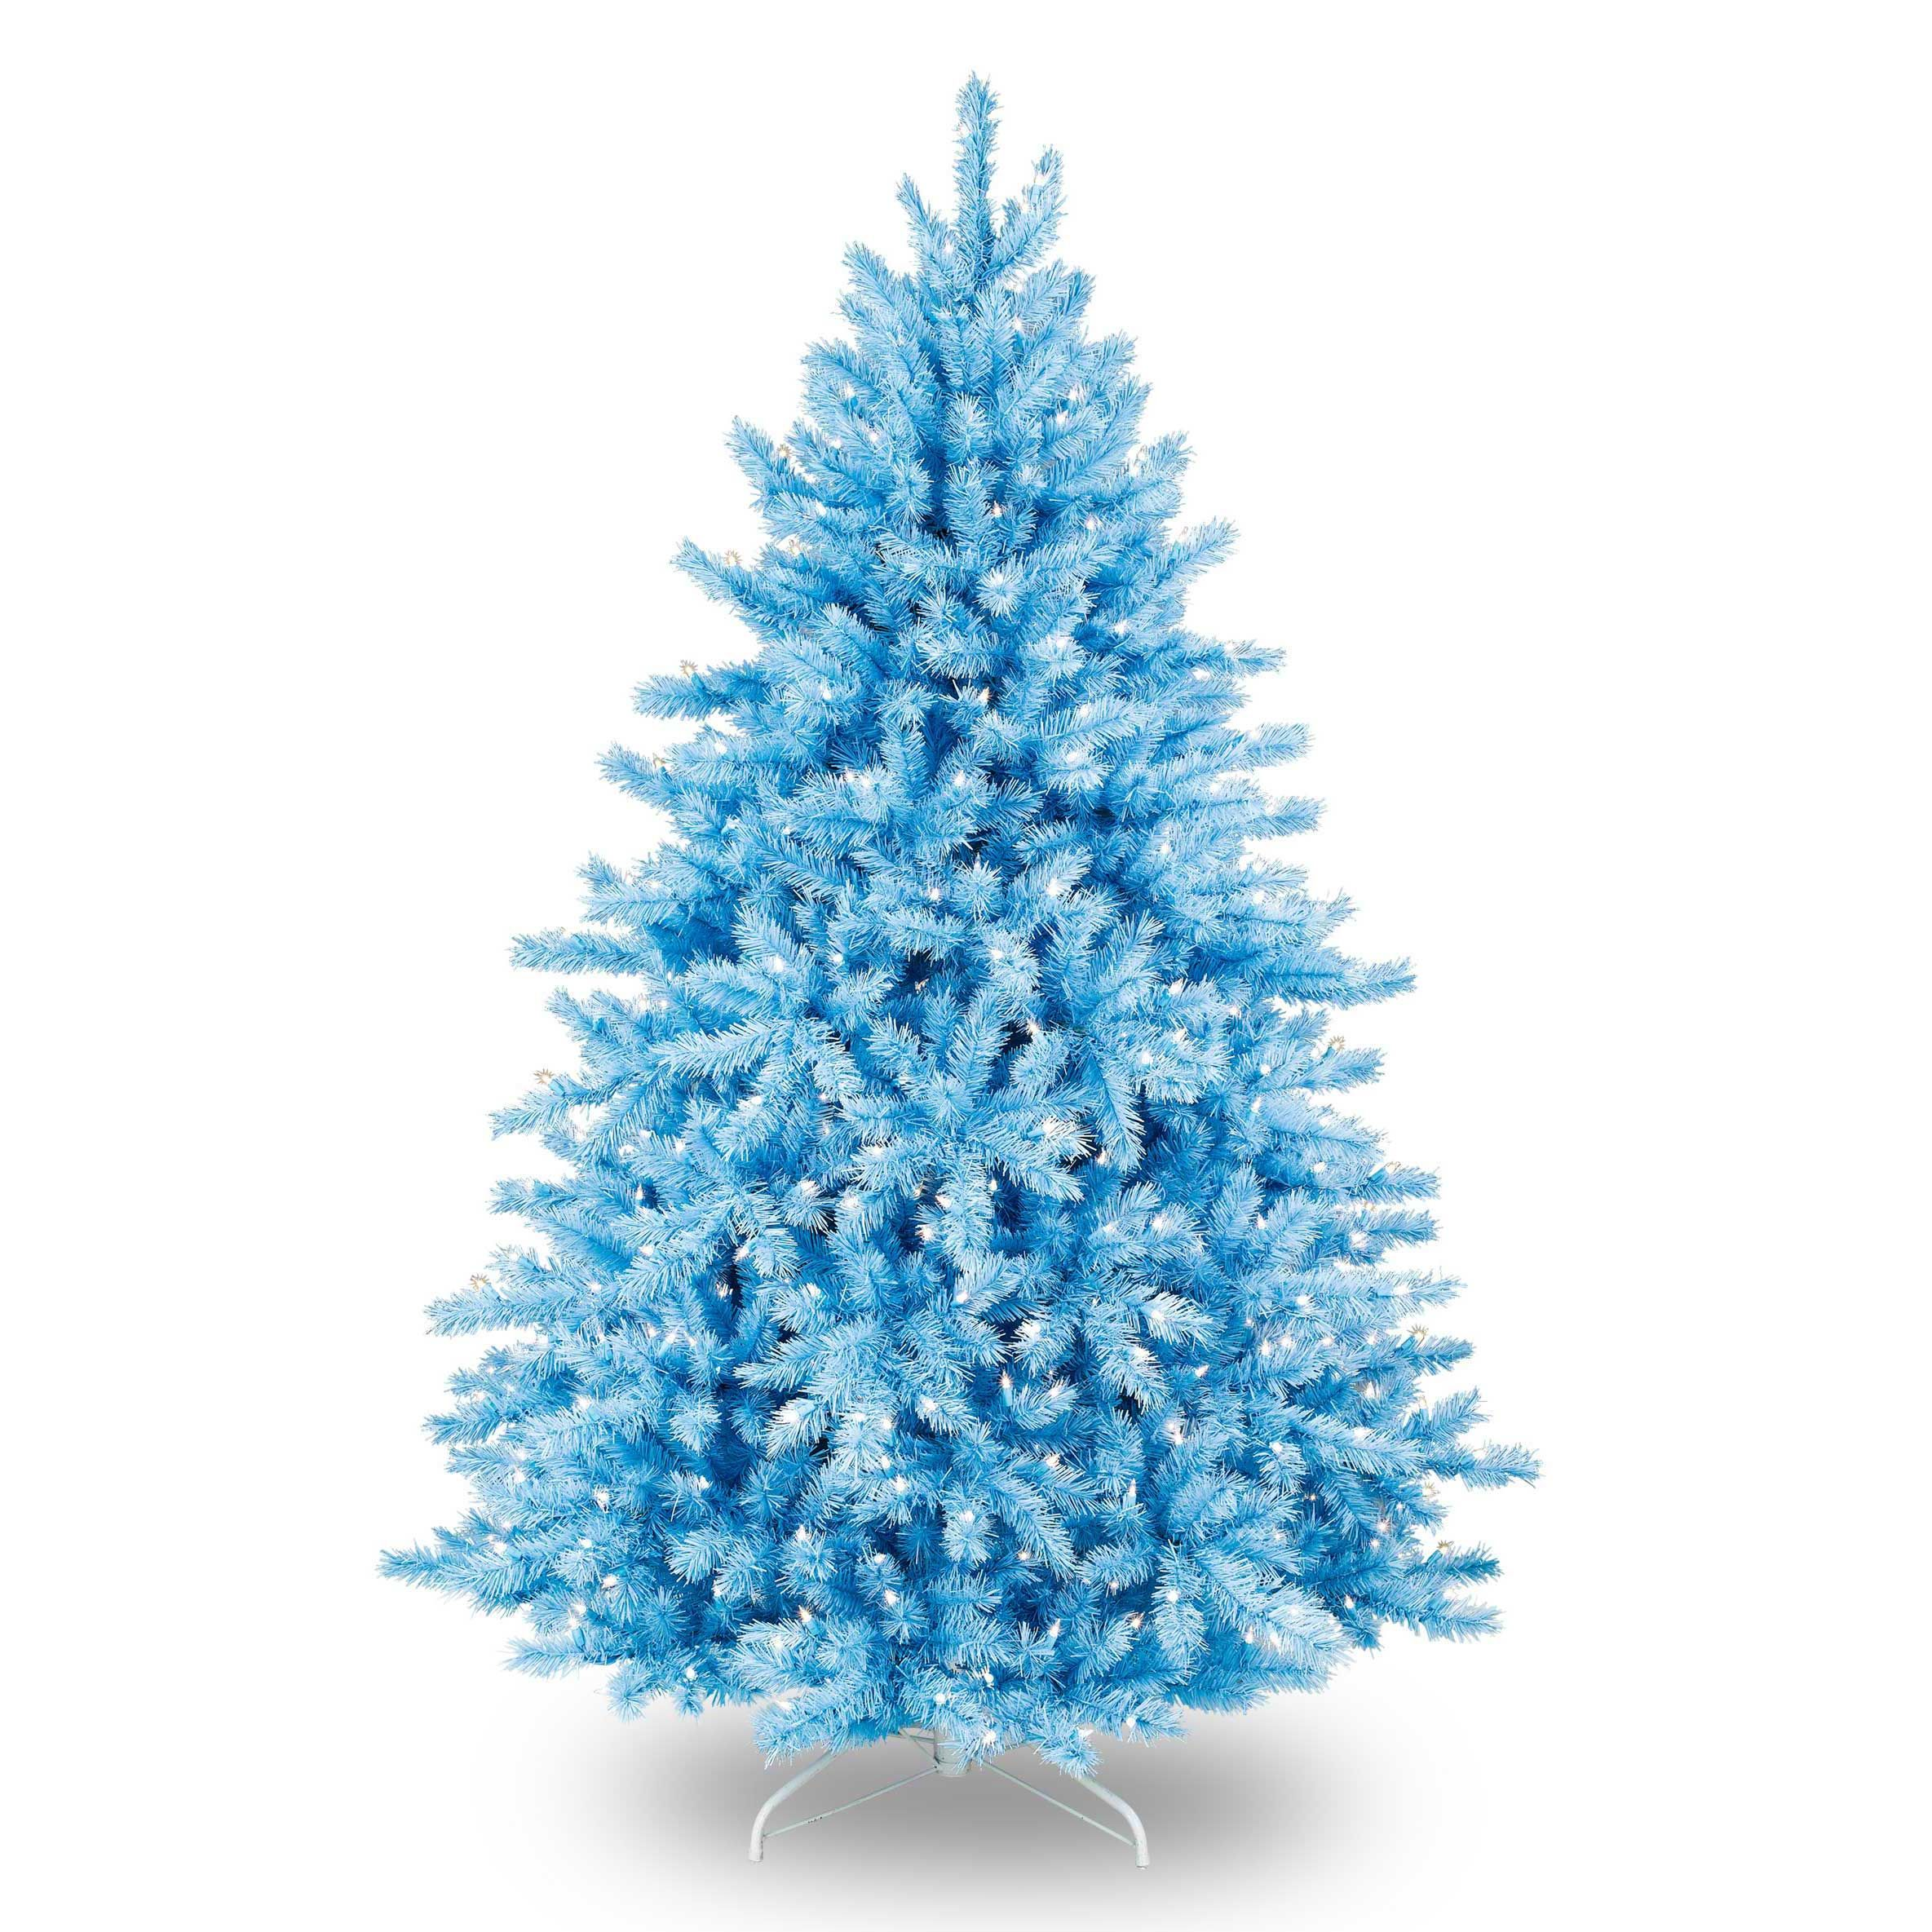 Blue christmas trees decorating ideas - Superior Light Blue Christmas Tree Part 5 Our Smurftastic Blue Christmas Tree For Easter